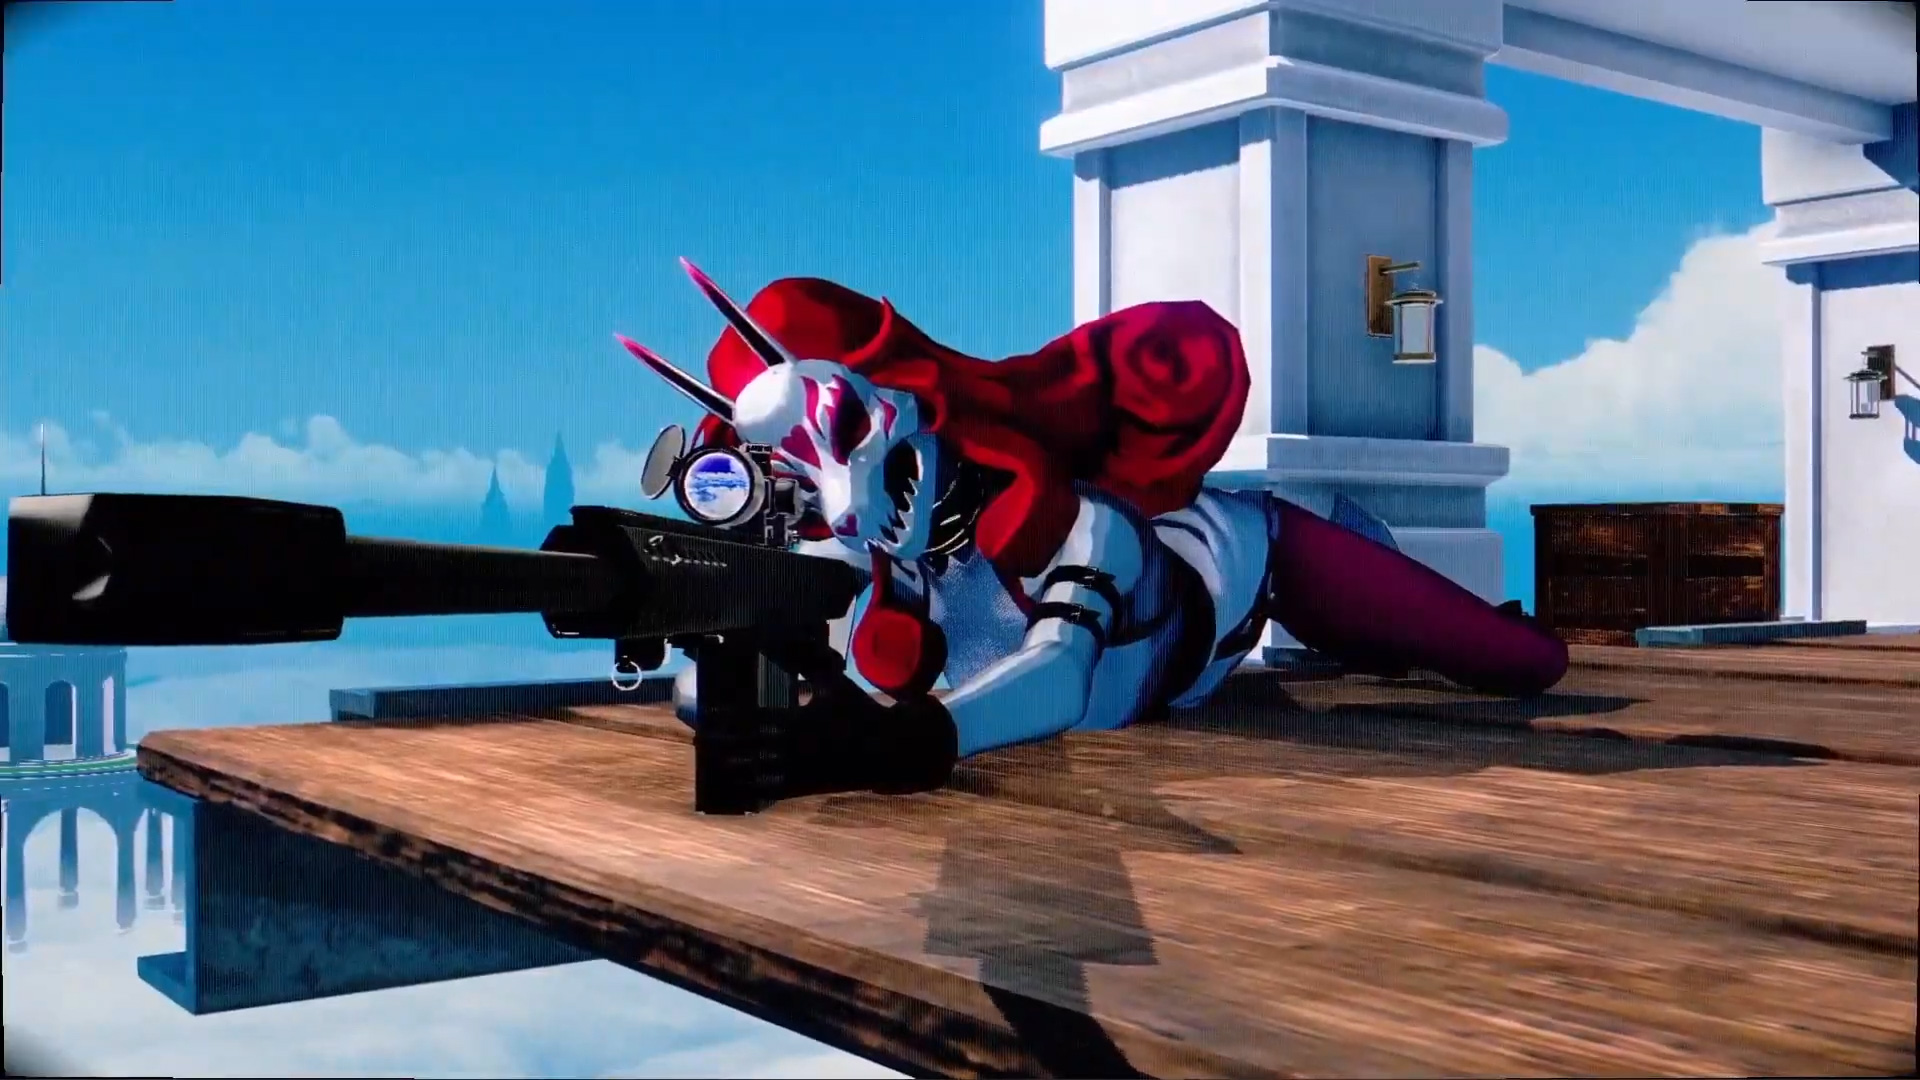 Neon White might be the most out-there game in today's Nintendo Direct screenshot